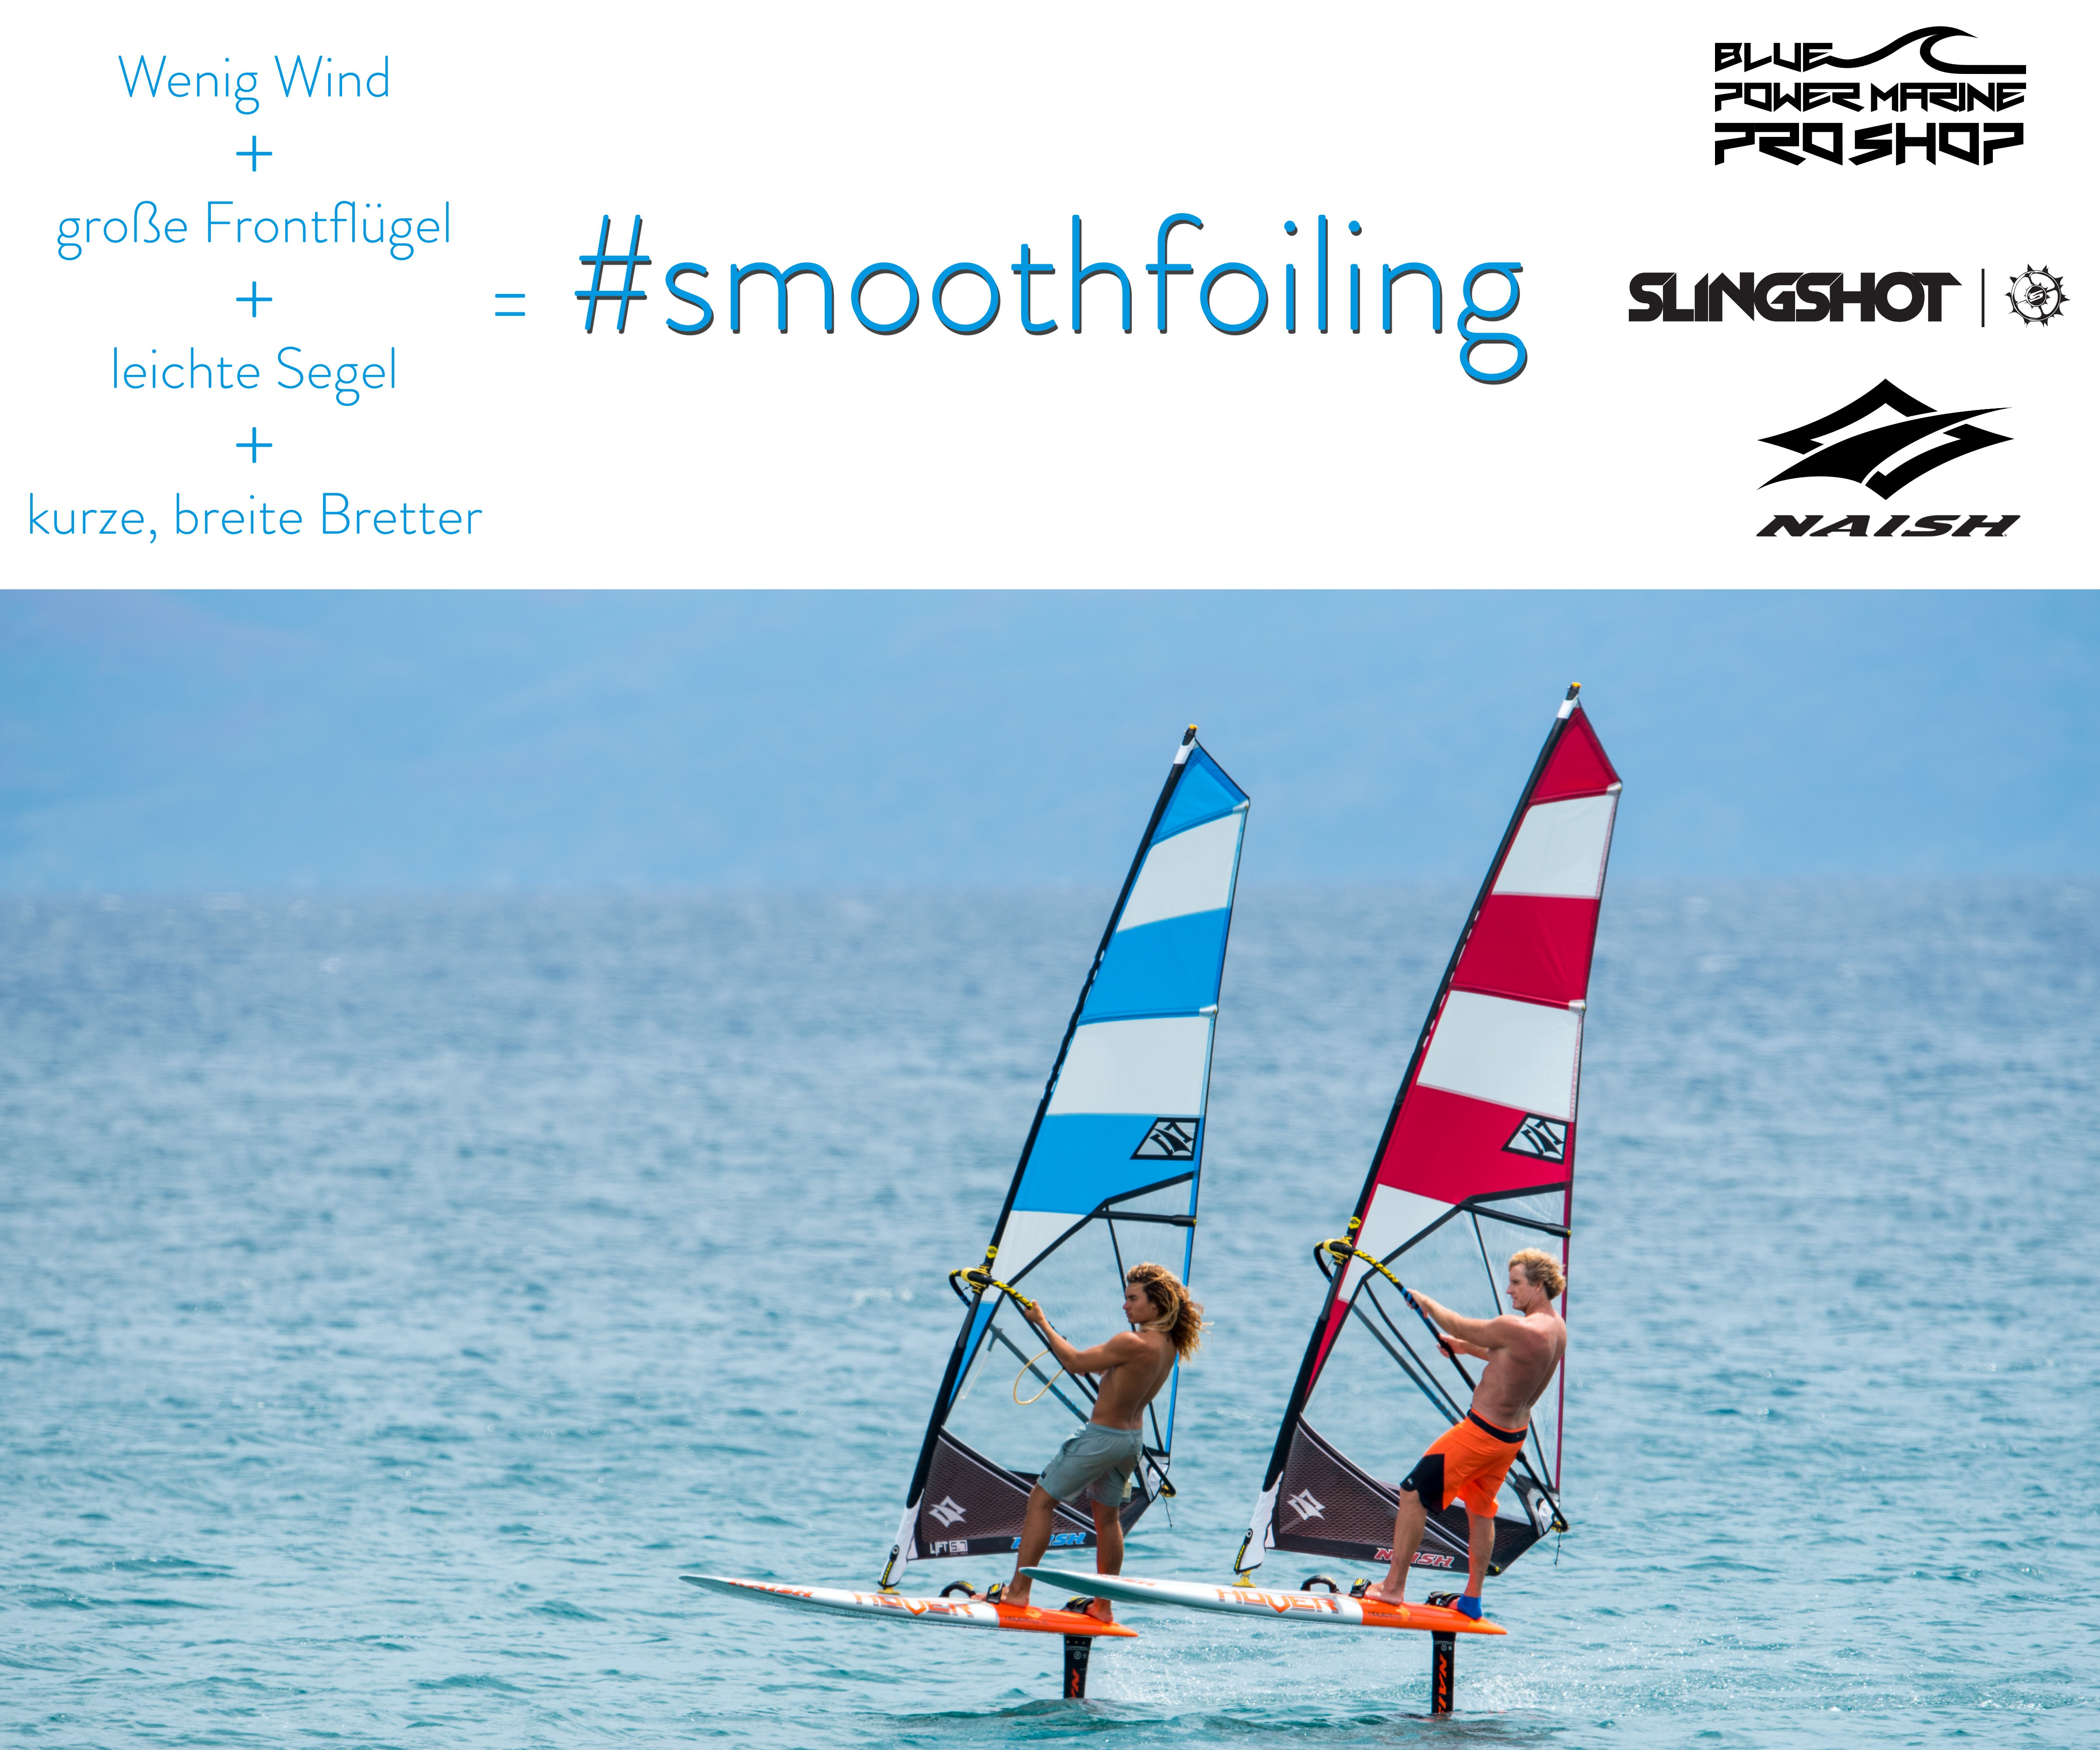 Smoothfoiling